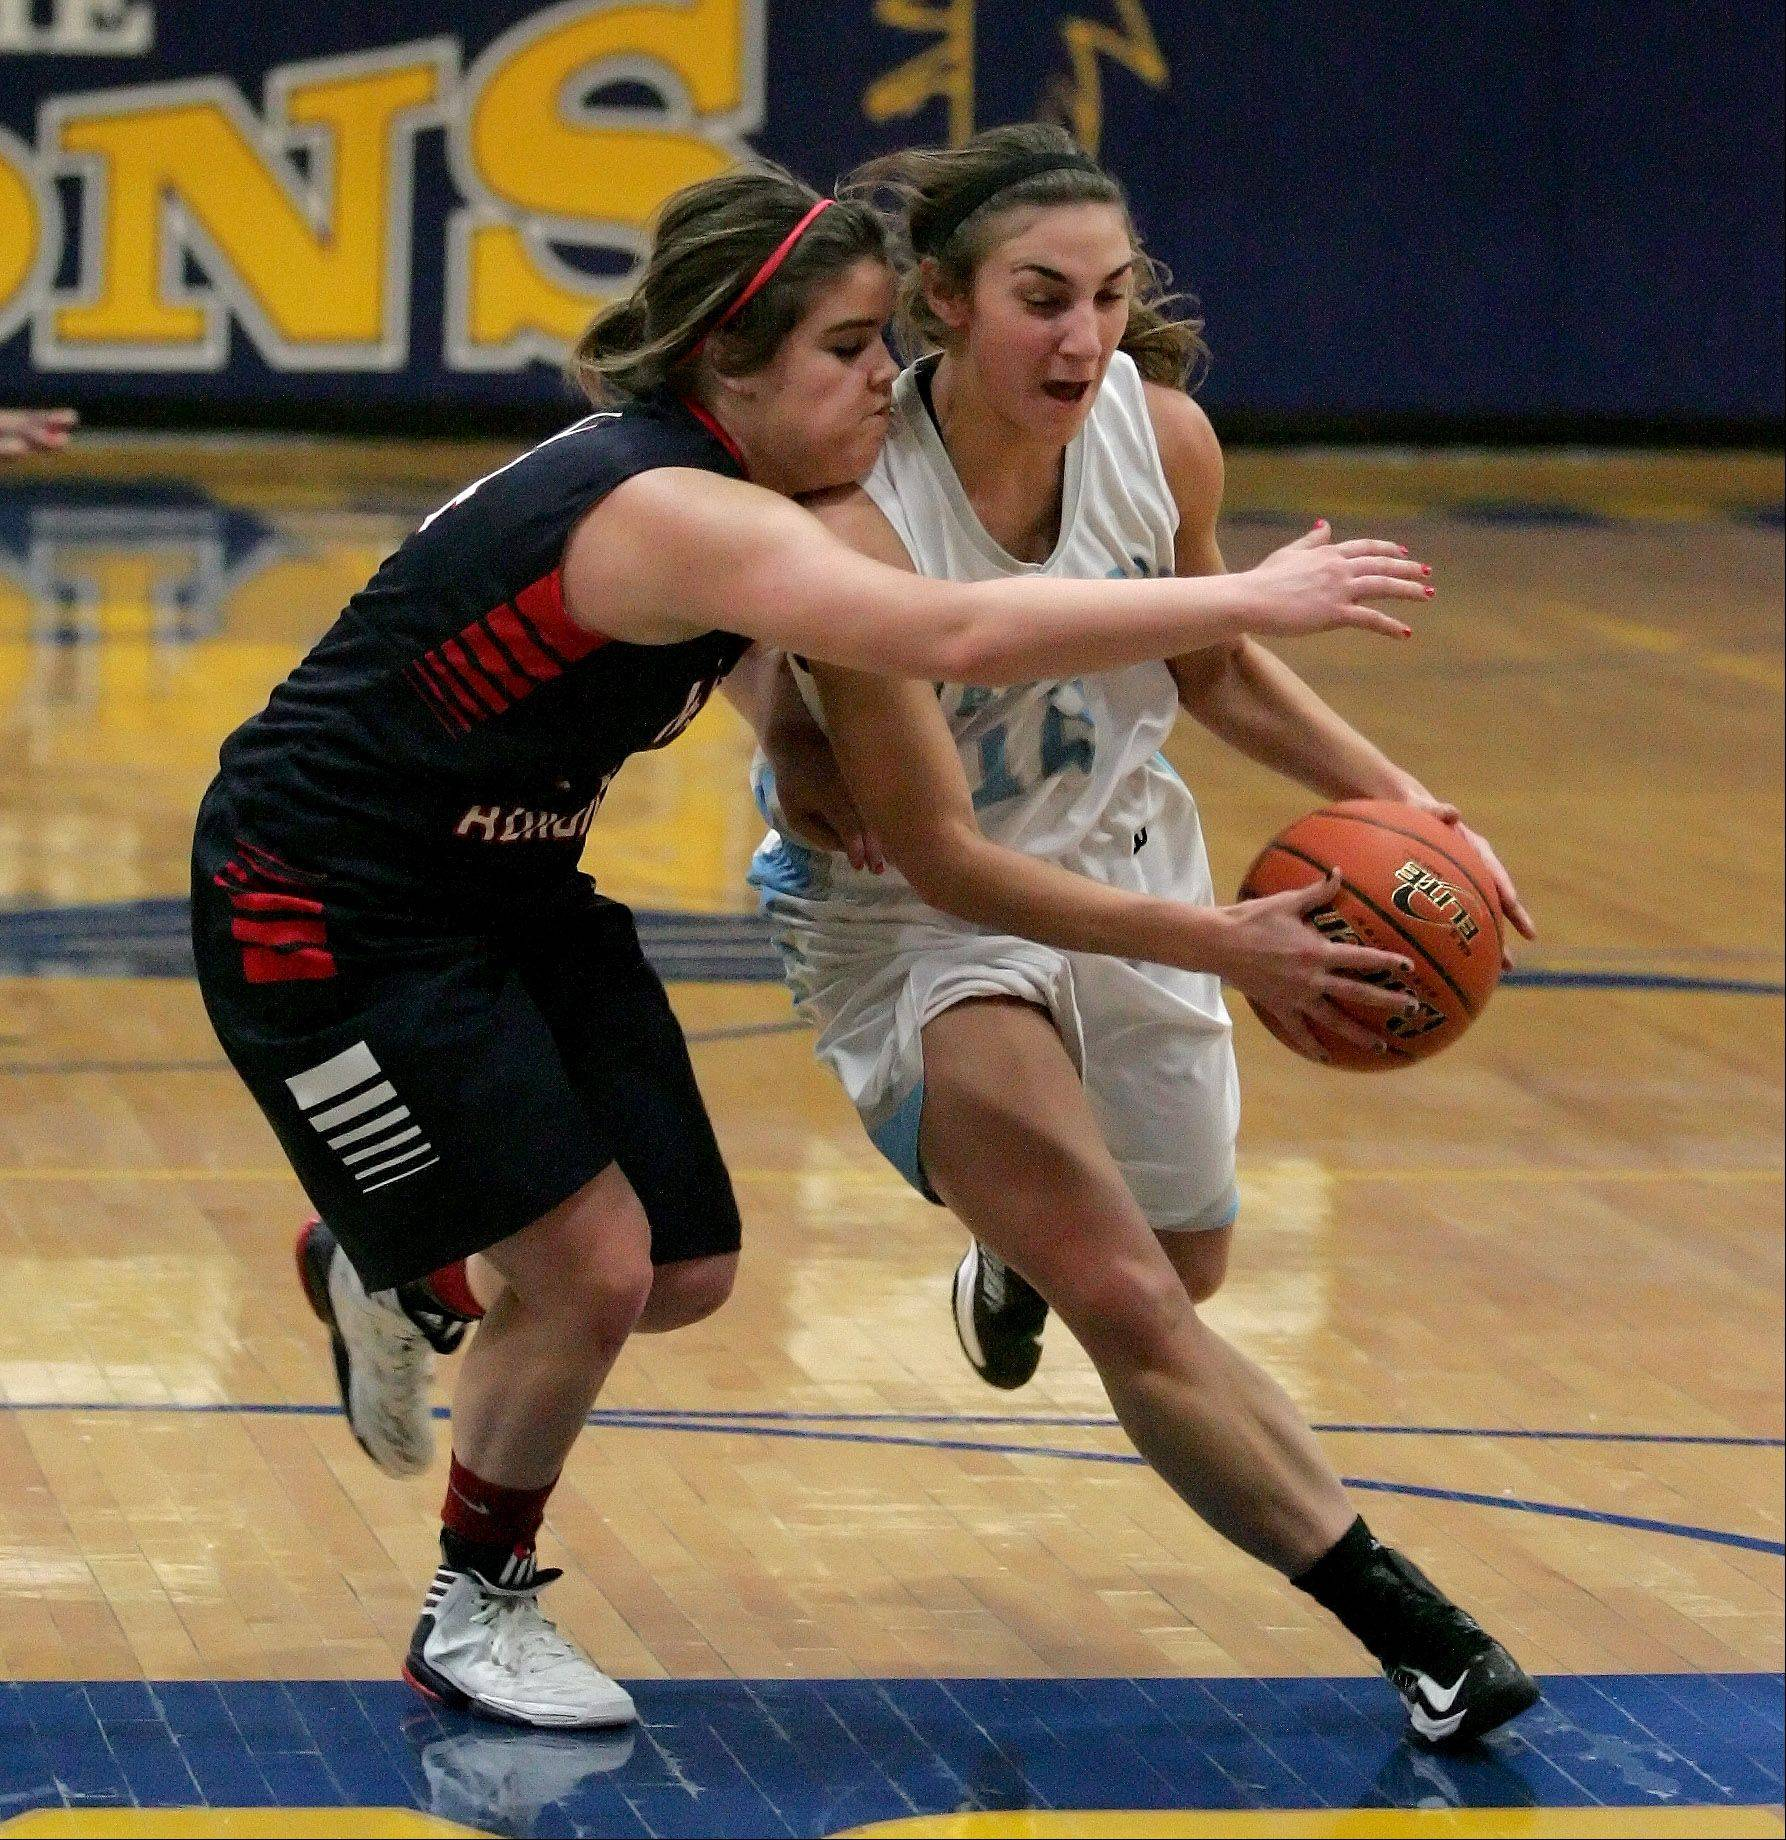 Angela Bruno, right, of Willowbrook drives the ball around Erin Jacobsen of West Aurora in girls basketball action at the 2012 Bill Neibch Holiday Tournament at Wheaton North High School on Wednesday.